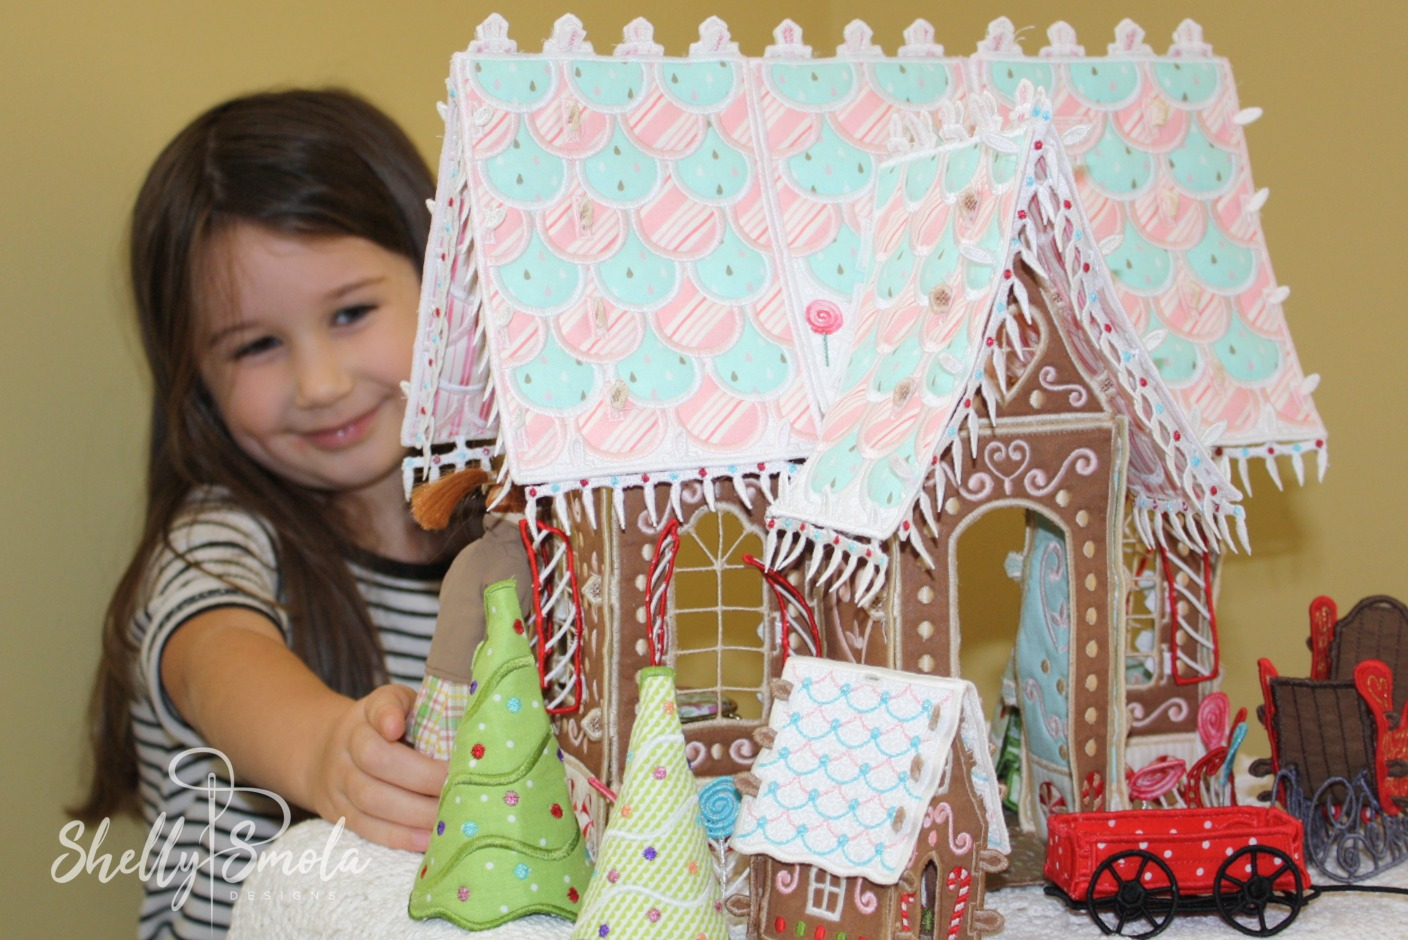 Kate and the Candy Lne Cottage by Shelly Smola